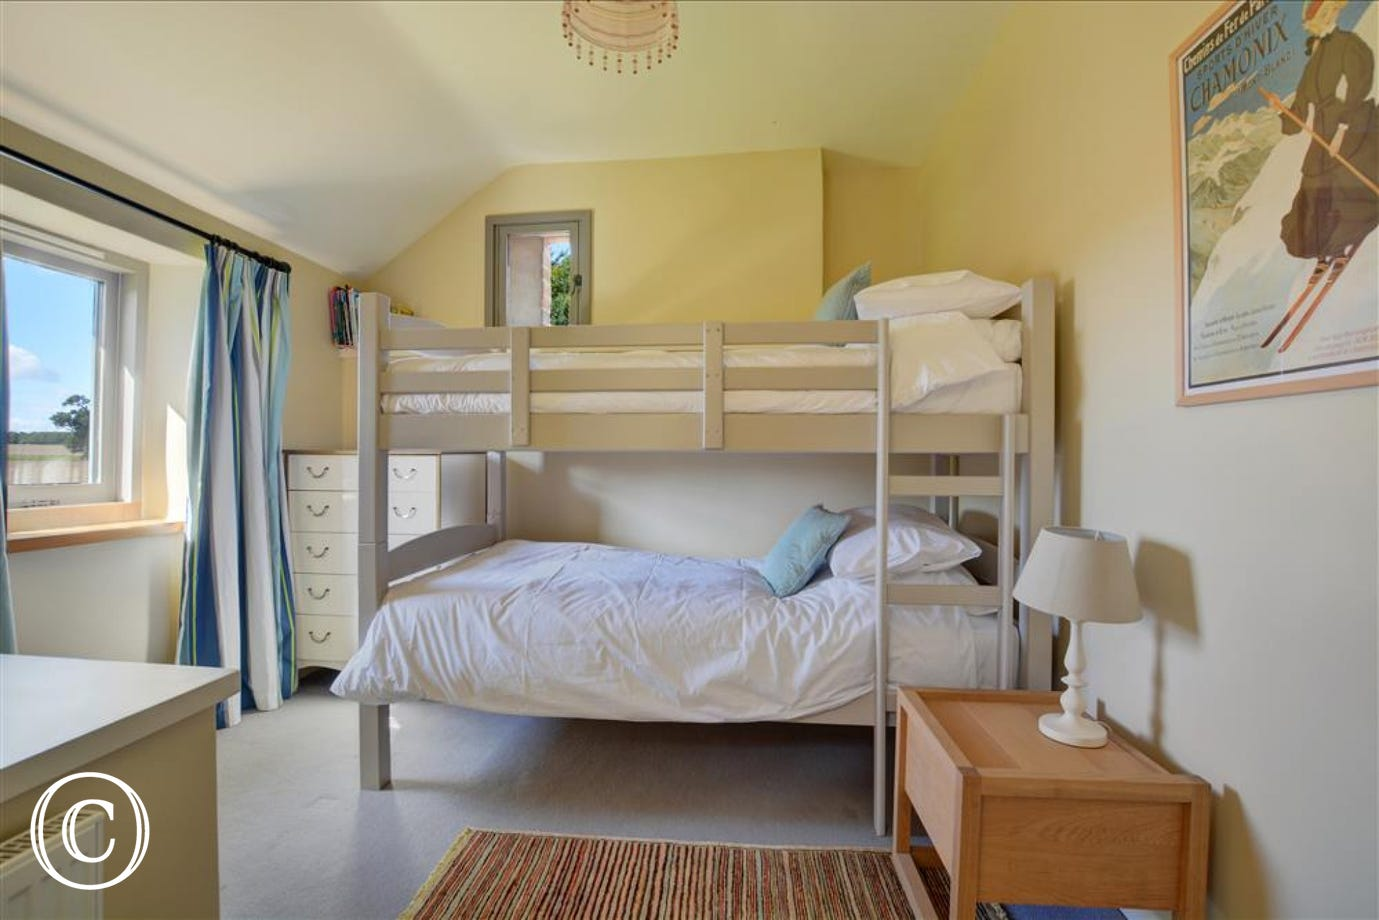 Bedroom five has full sized bunk beds